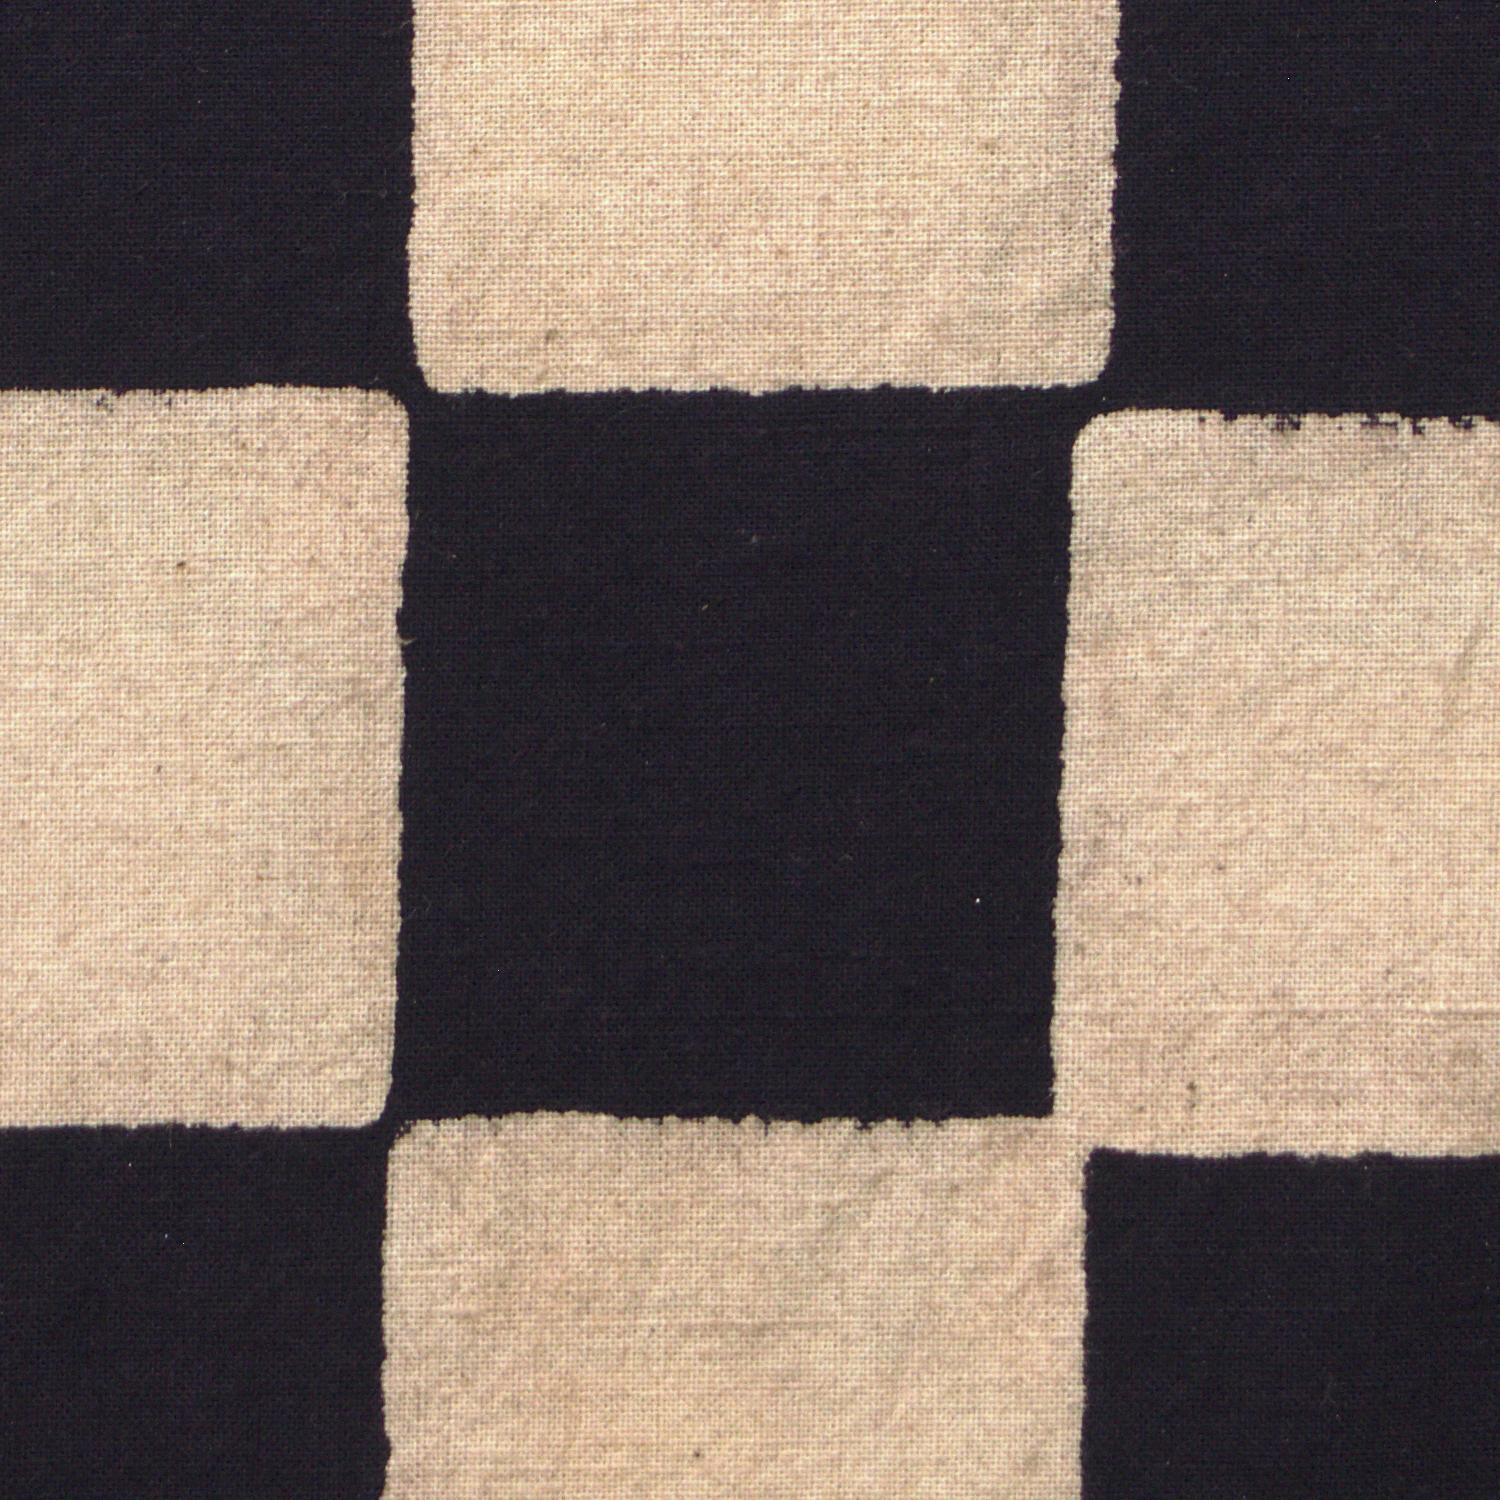 100% Block-Printed Cotton Fabric From India- Ajrak - Black White Resist Chequers Print - Close Up